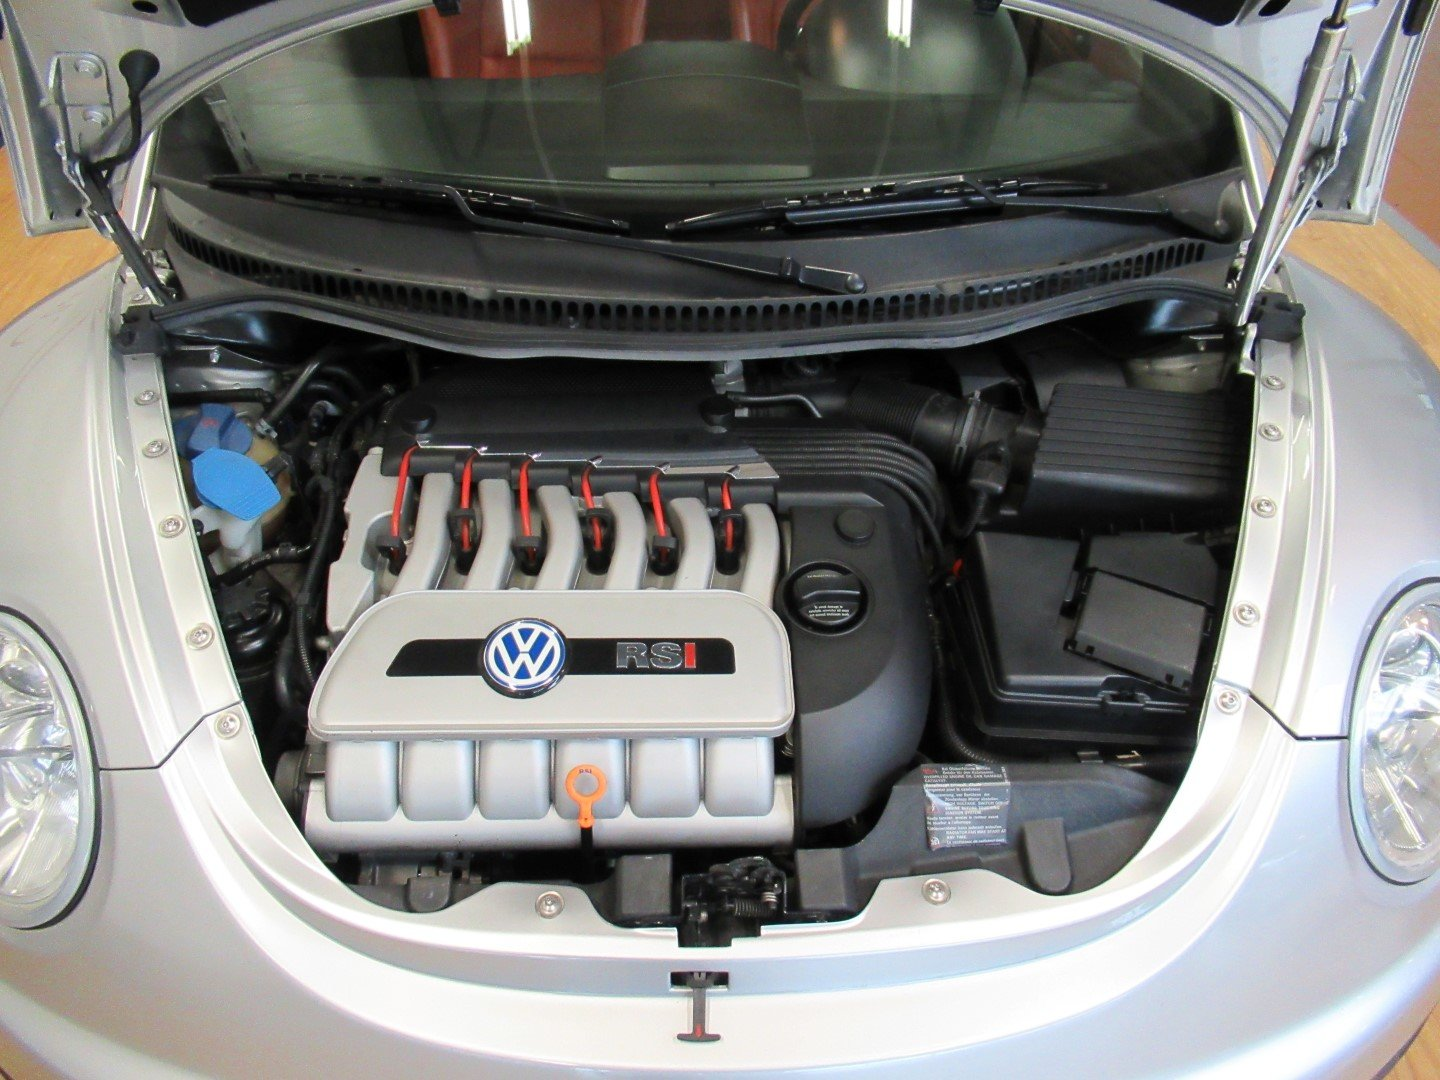 2002 Volkswagen Beetle RSI Limited Edition no. 56 of 250 For Sale (picture 6 of 6)